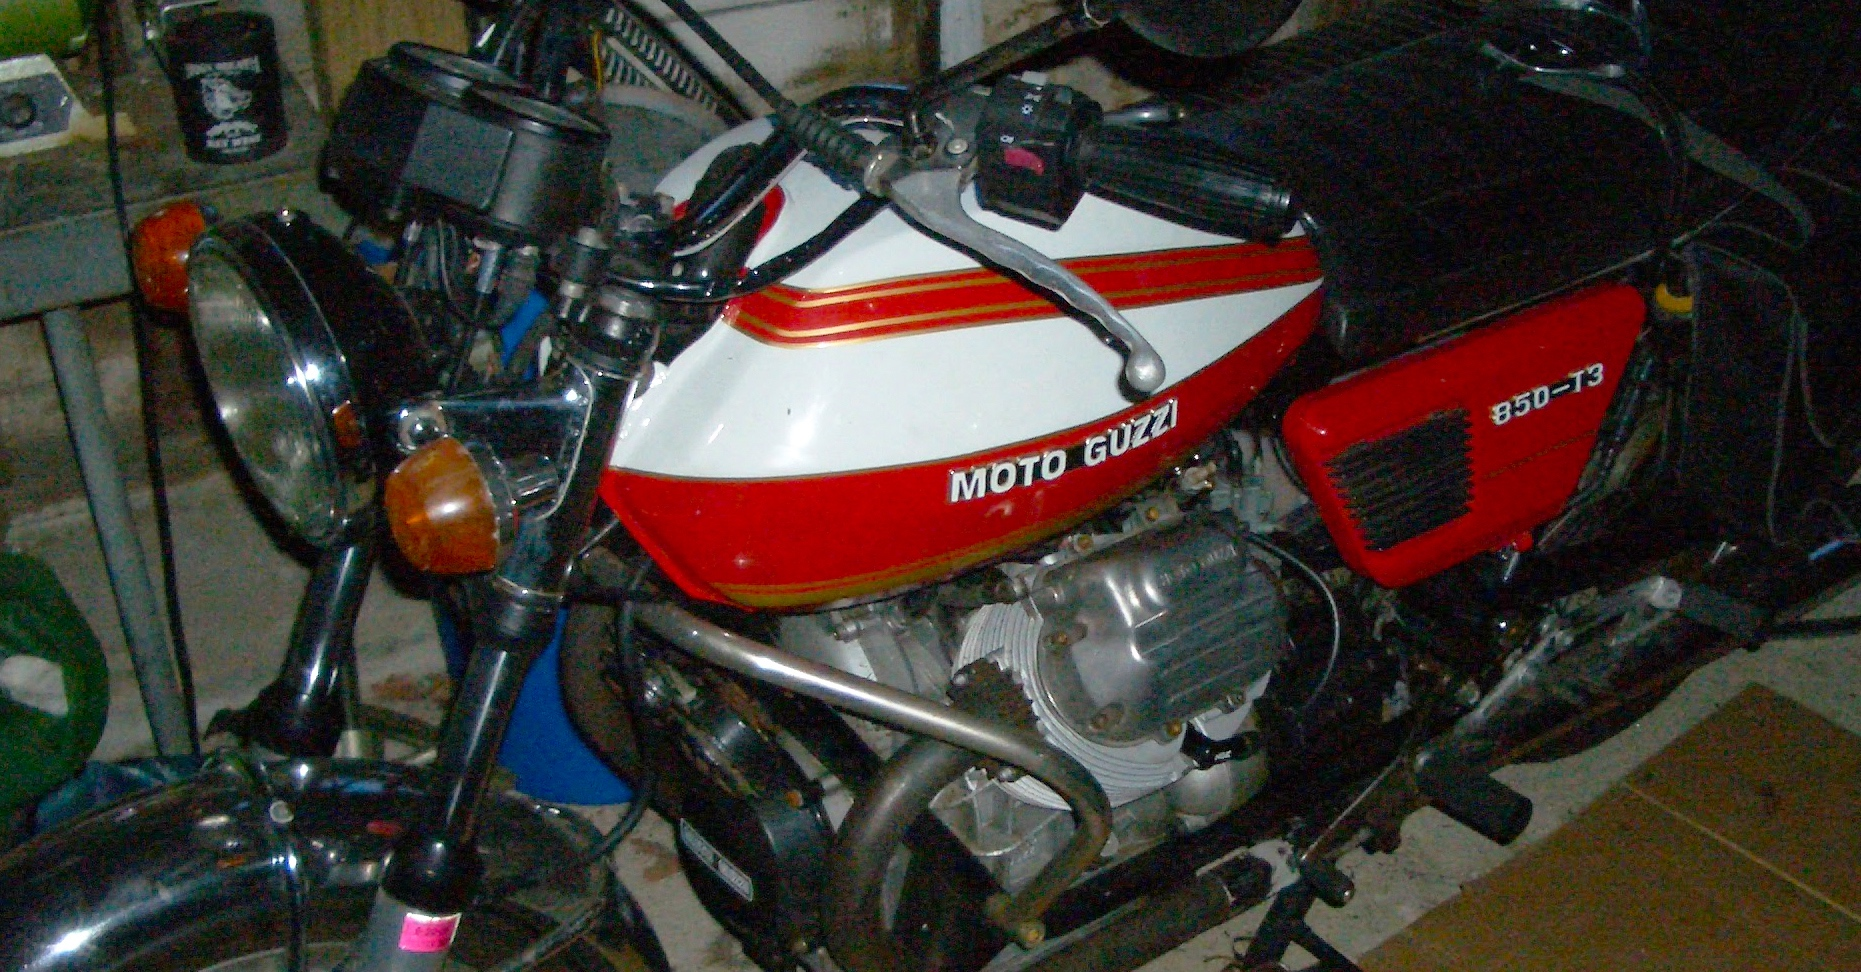 Repair vs. Replace: A cautionary tale about an old motorcycle